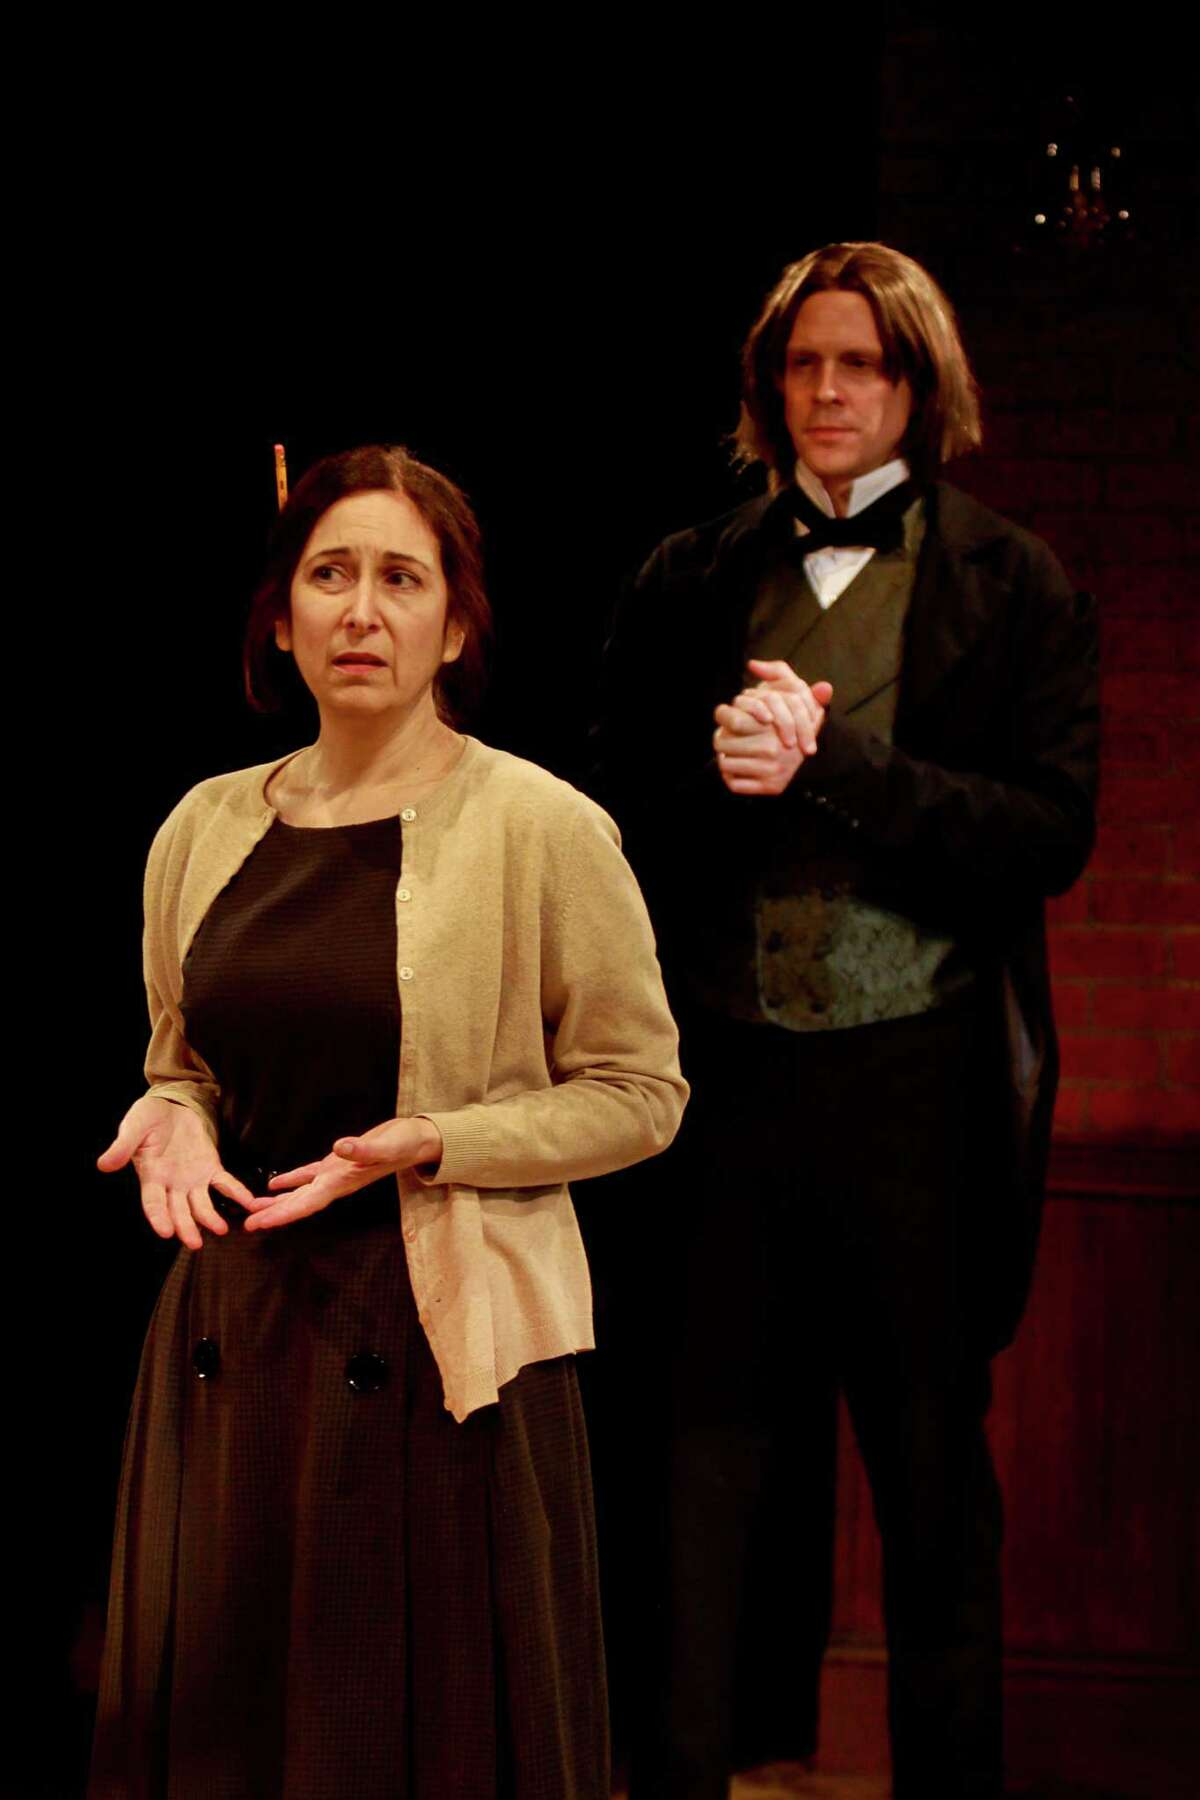 """Amy Herzberg stars as Rosemary Dunn and Justin Doran stars as Franz Liszt, in Stages' production of the play,""""The Spiritualist."""""""